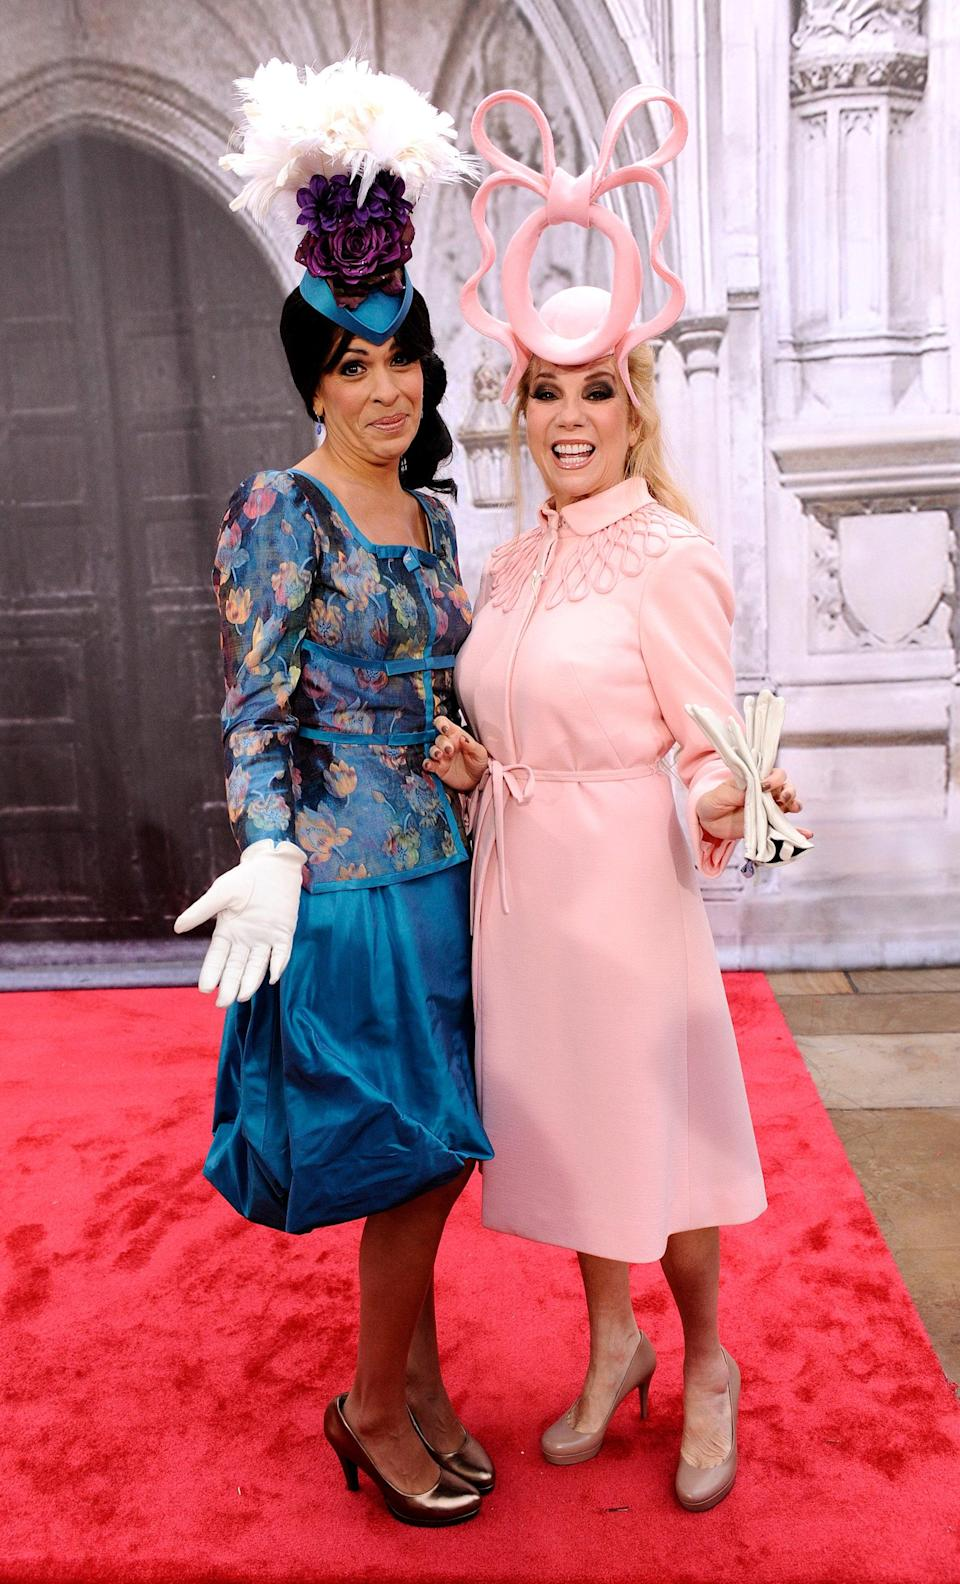 Like we said, morning TV hosts take Halloween <em>very</em> seriously. Just take one look at Kathie Lee Gifford and Hoda Kotb as royal wedding guests Princesses Beatrice and Eugenie back in 2011. Though their costume isn't the most timely pop-culture reference, it <em>is</em> fun. Wear your best dress and a fancy hat and you're all set.